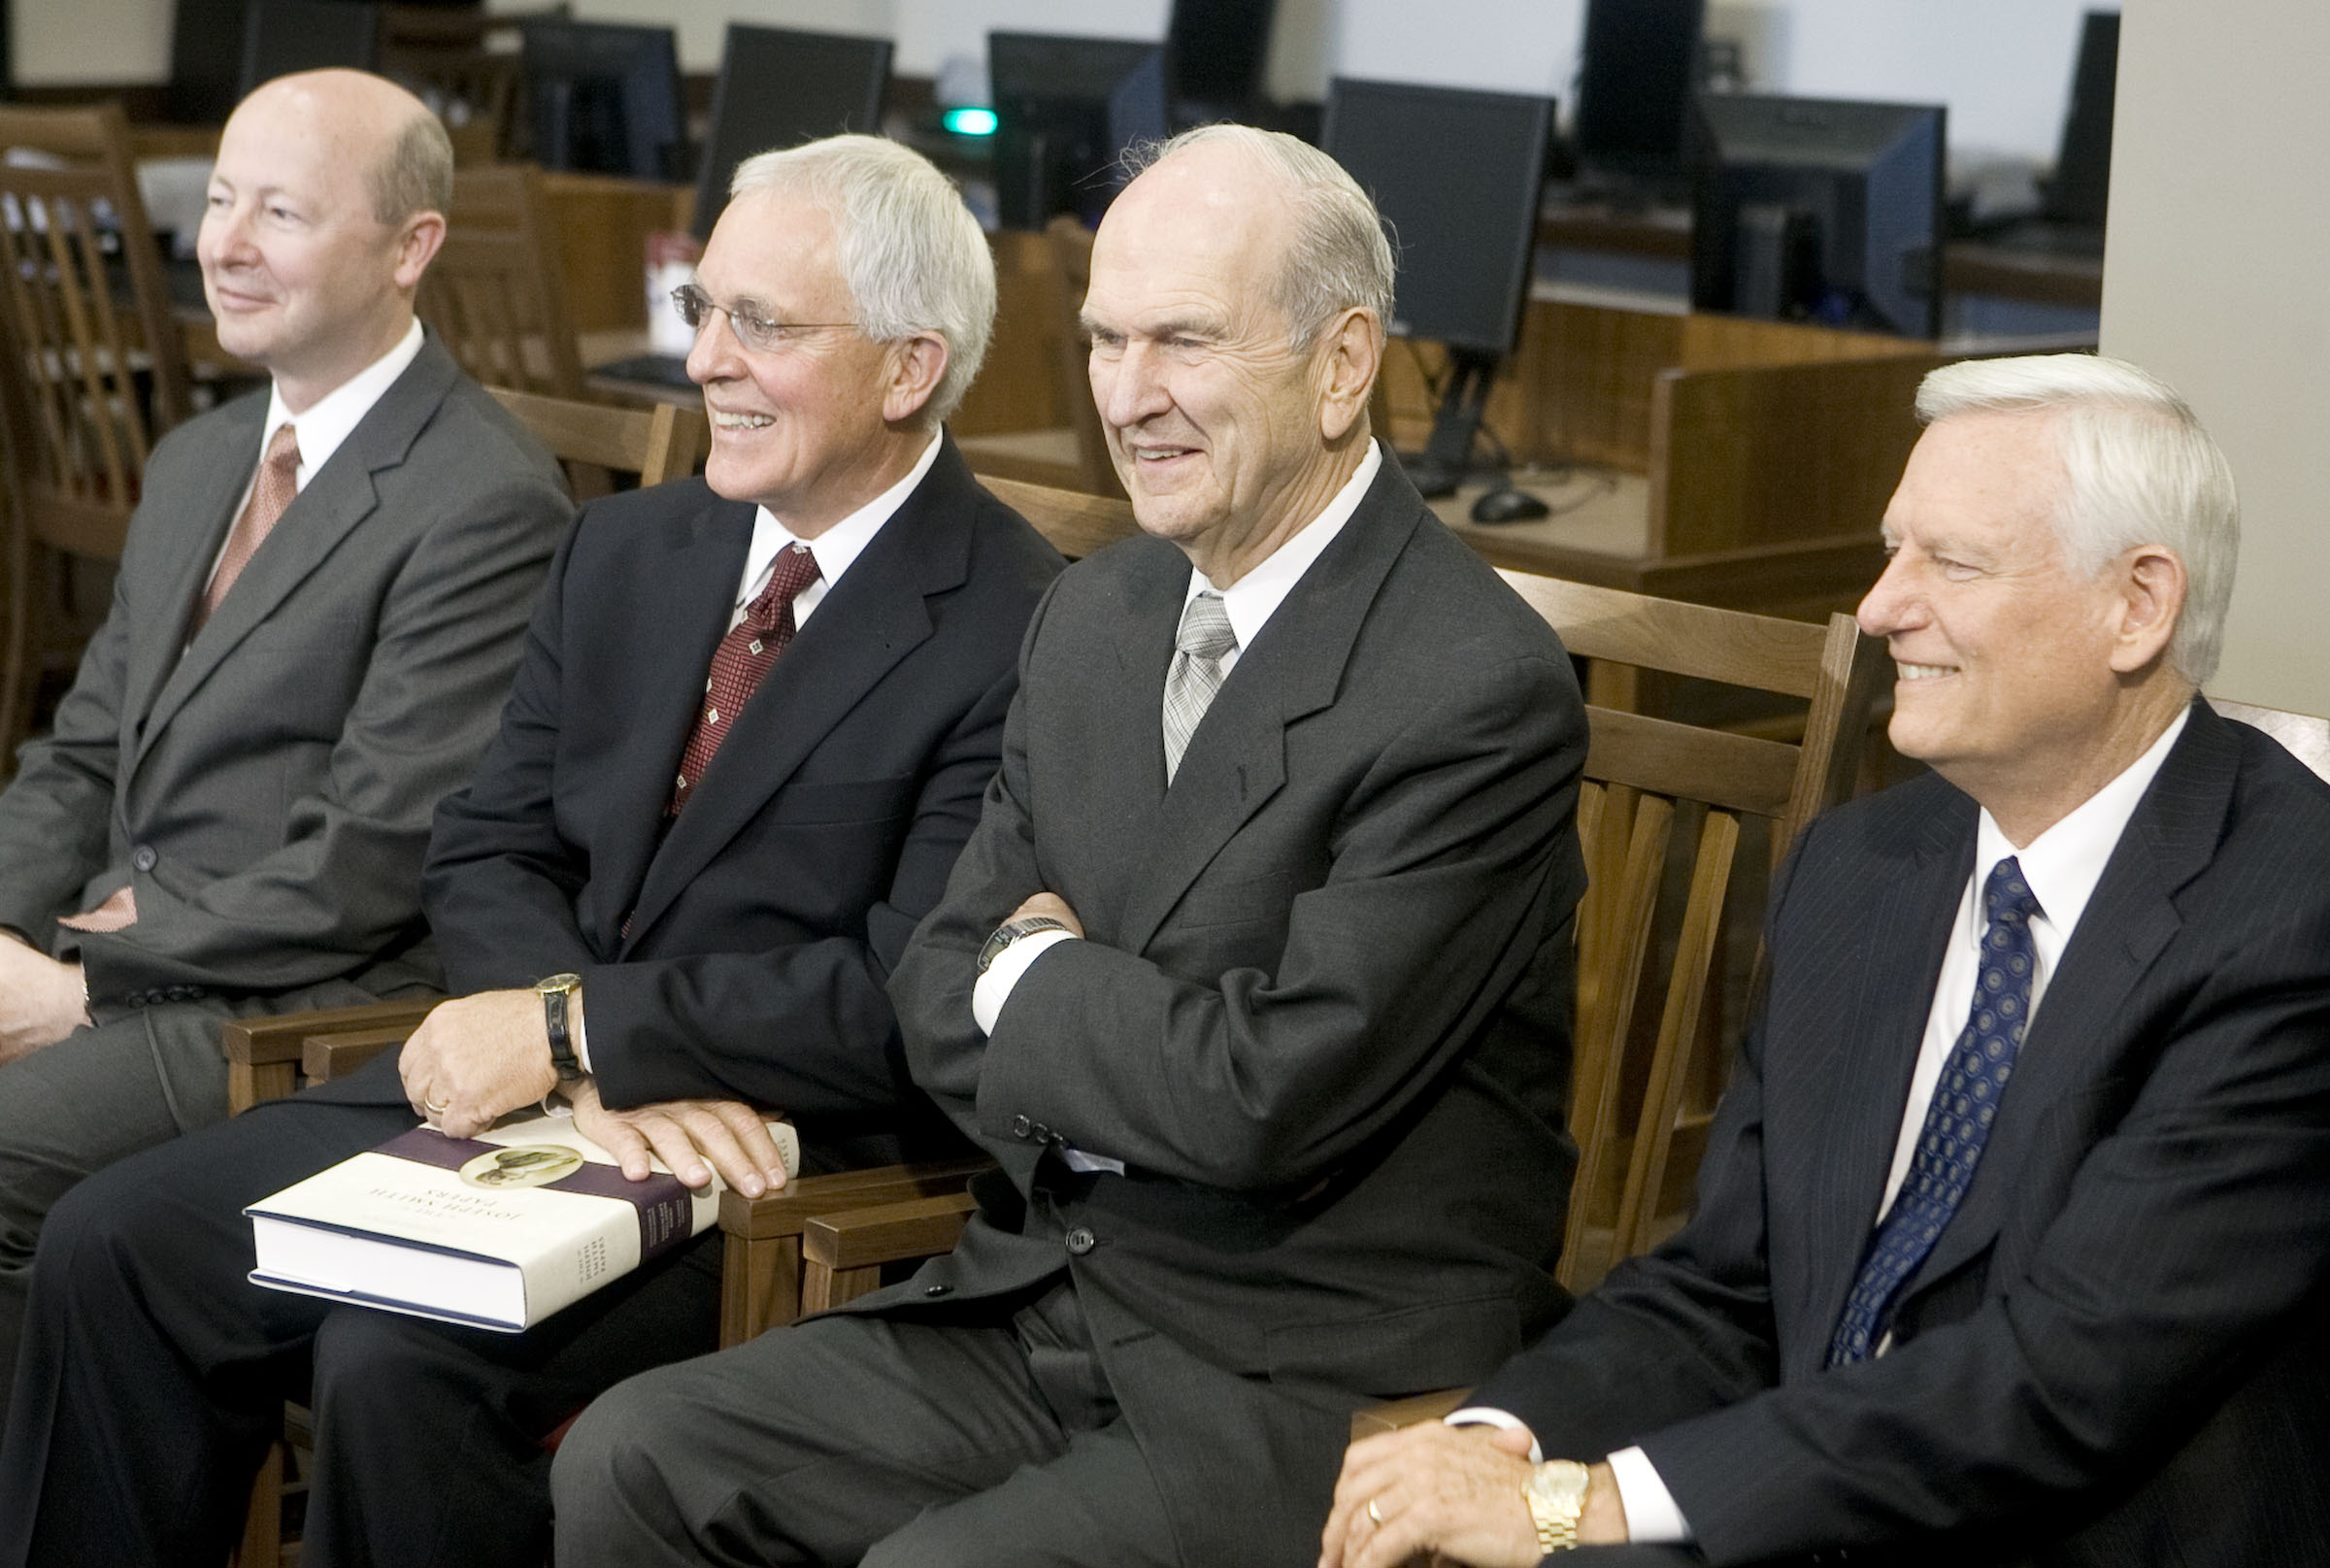 From left, officials of The Church of Jesus Christ of Latter-day Saints Richard E. Turley, assistant church historian; Marlin K. Jensen, church historian; Elder Russell M. Nelson of the Quorum of the Twelve Apostles and Elder Paul K. Sybrowsky, assistant executive director of the Church History Department and a member of the First Quorum of the Seventy, attend a press conference introducing the latest volume to be published in the Joseph Smith Papers project Sept. 22, 2009 in Salt Lake City, Utah.